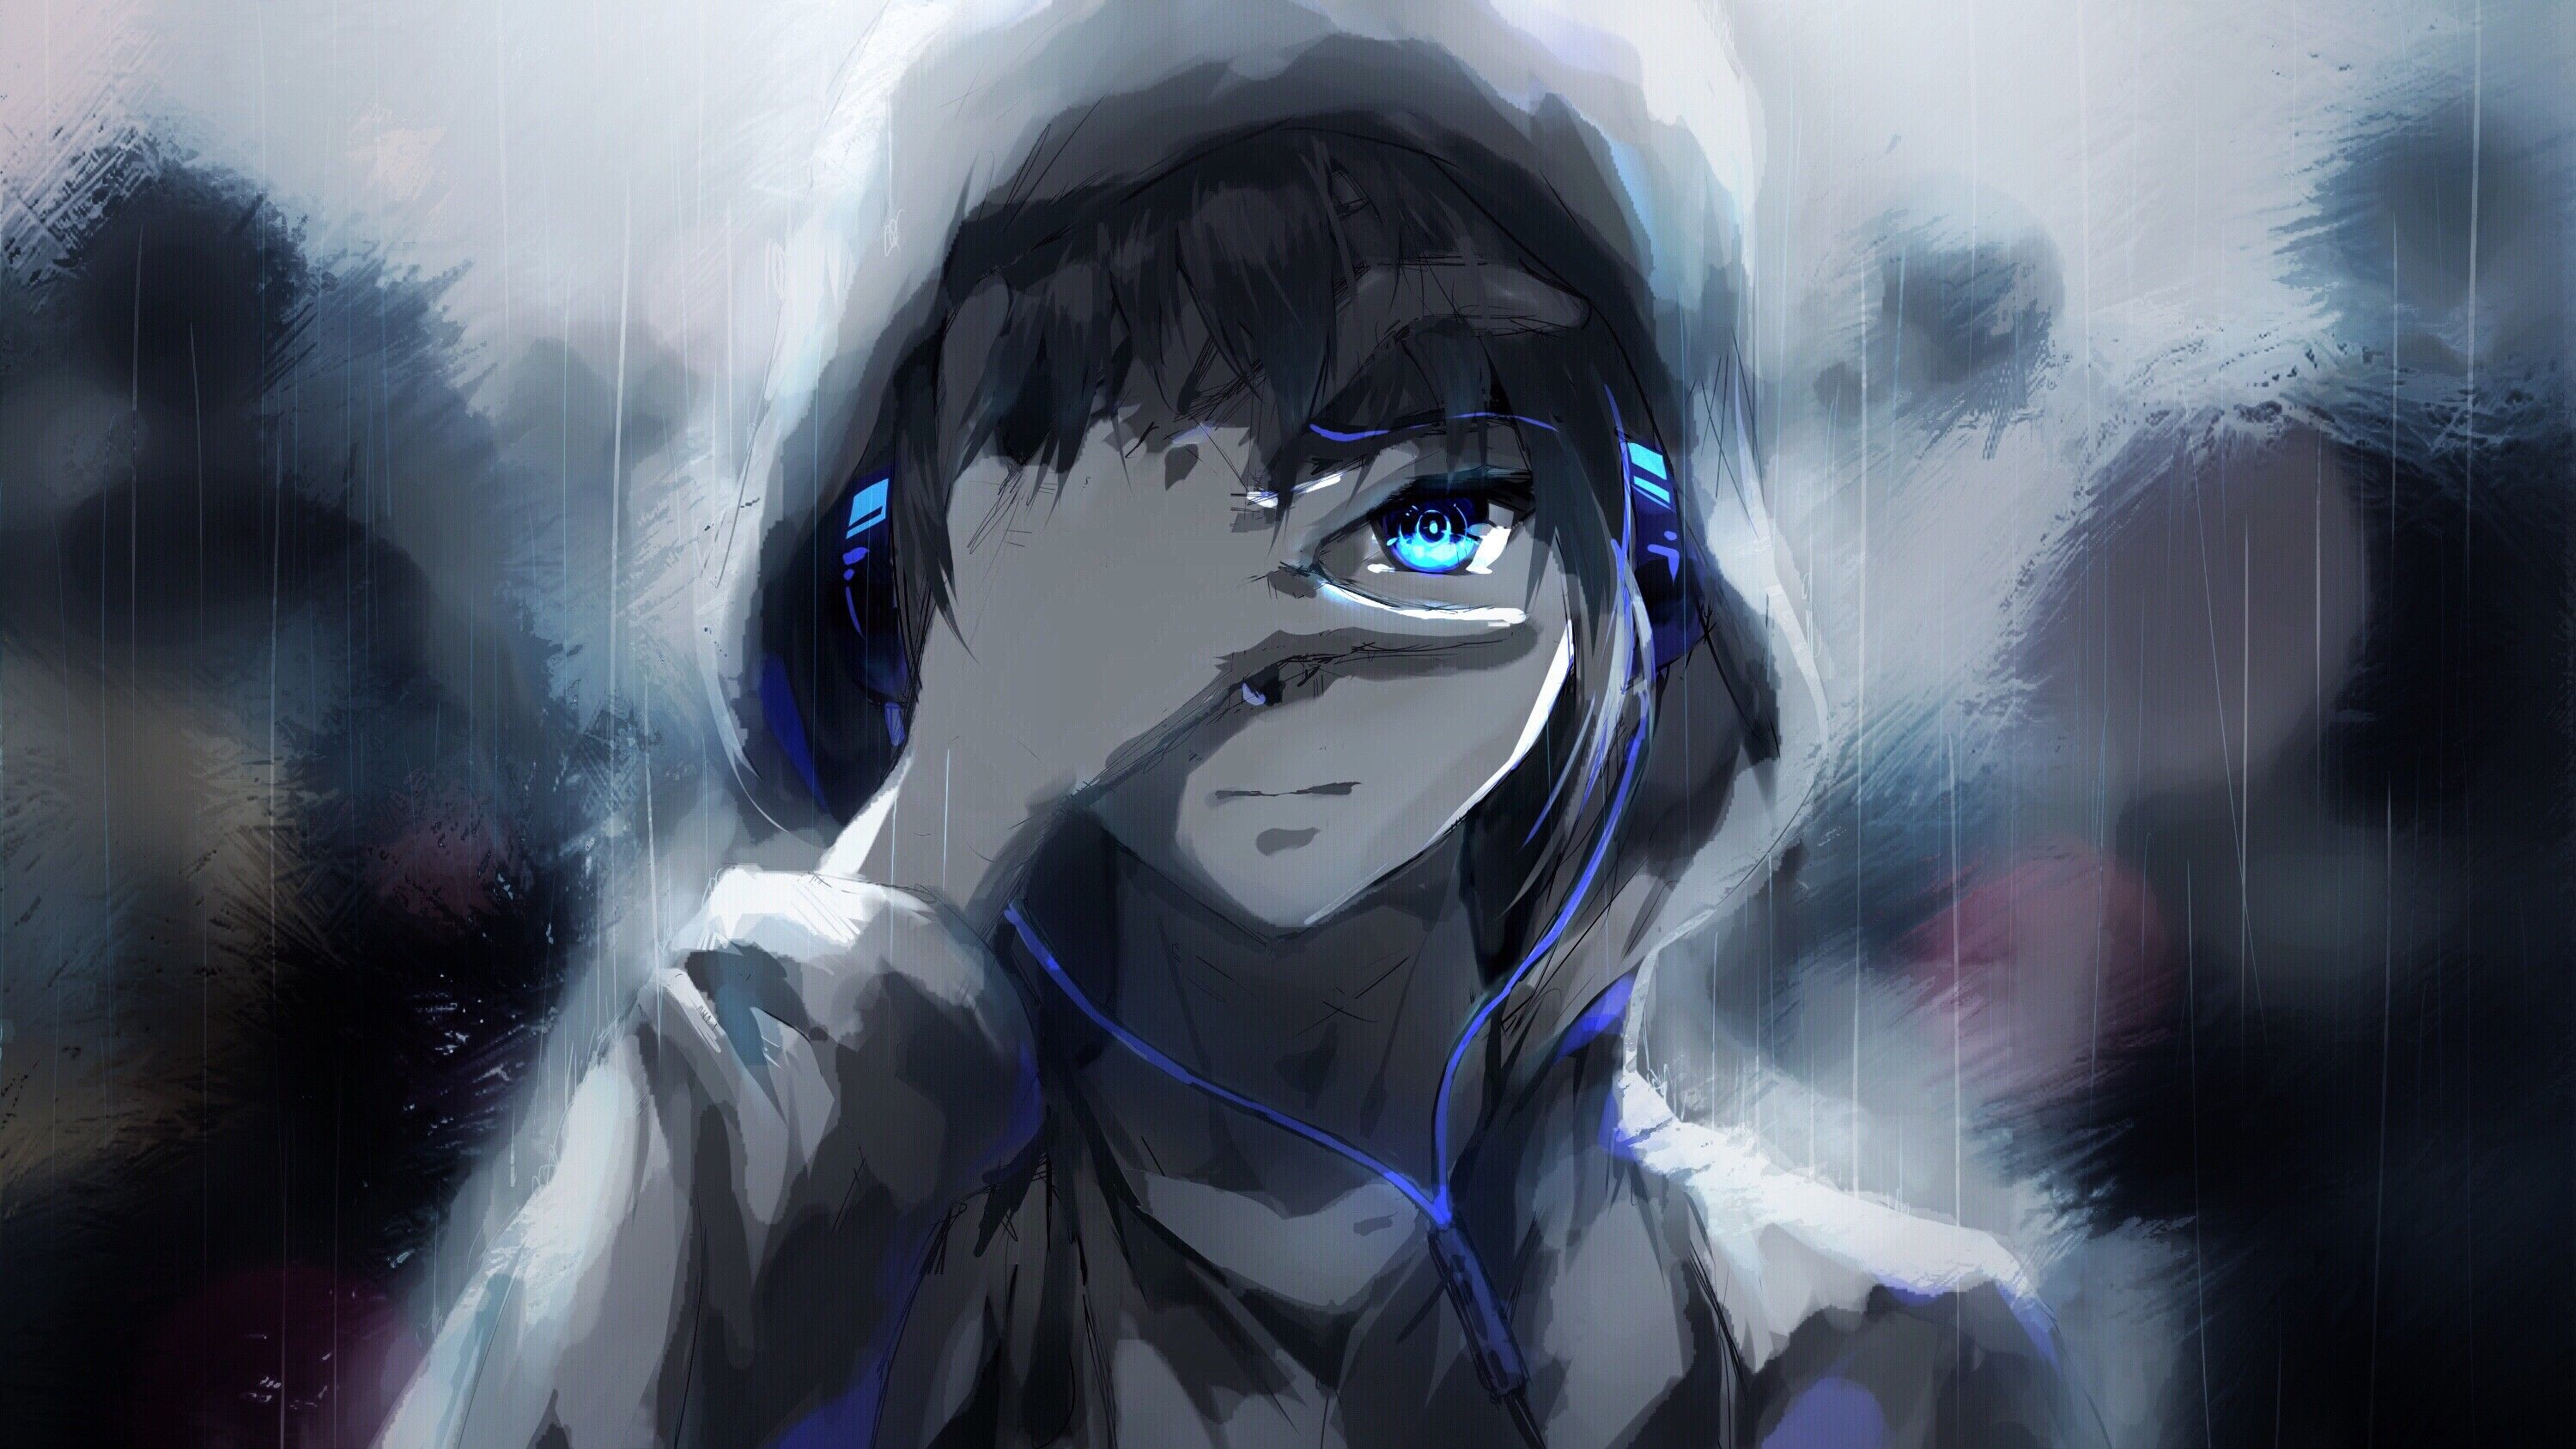 Anime Wallpaper 3000x1687 Manga Boys Artwork Fantasy Art Music Headphones